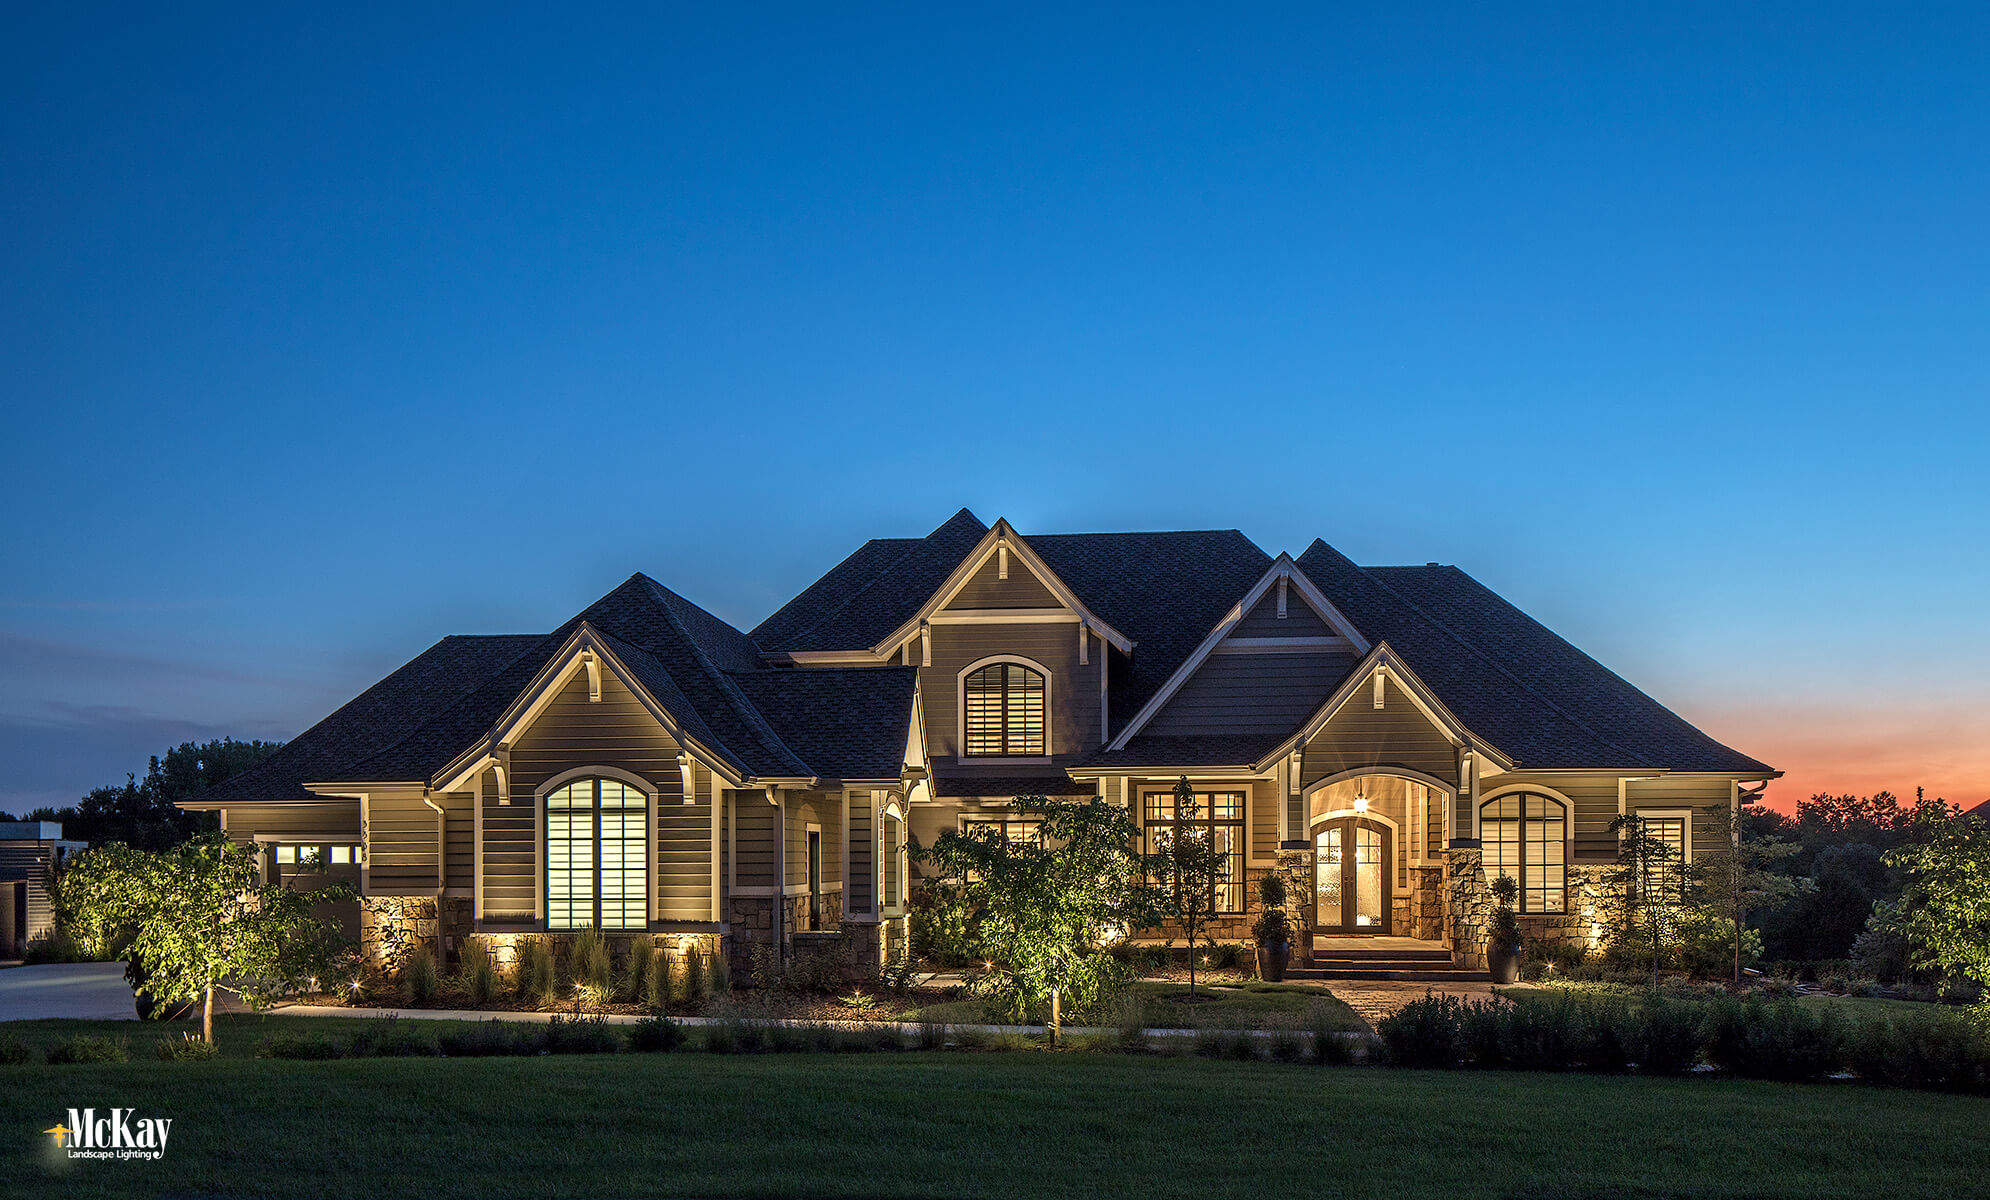 There's nothing quite like driving up to a warm, welcoming home with the prettiest Nebraska sunset peeking through the trees in the backdrop. This gorgeous new home is nestled in a serene location outside of Omaha, surrounded by the wonders of nature and picturesque views. Click to learn more about the residential landscape lighting design... | McKay Lighting - Omaha, Nebraska